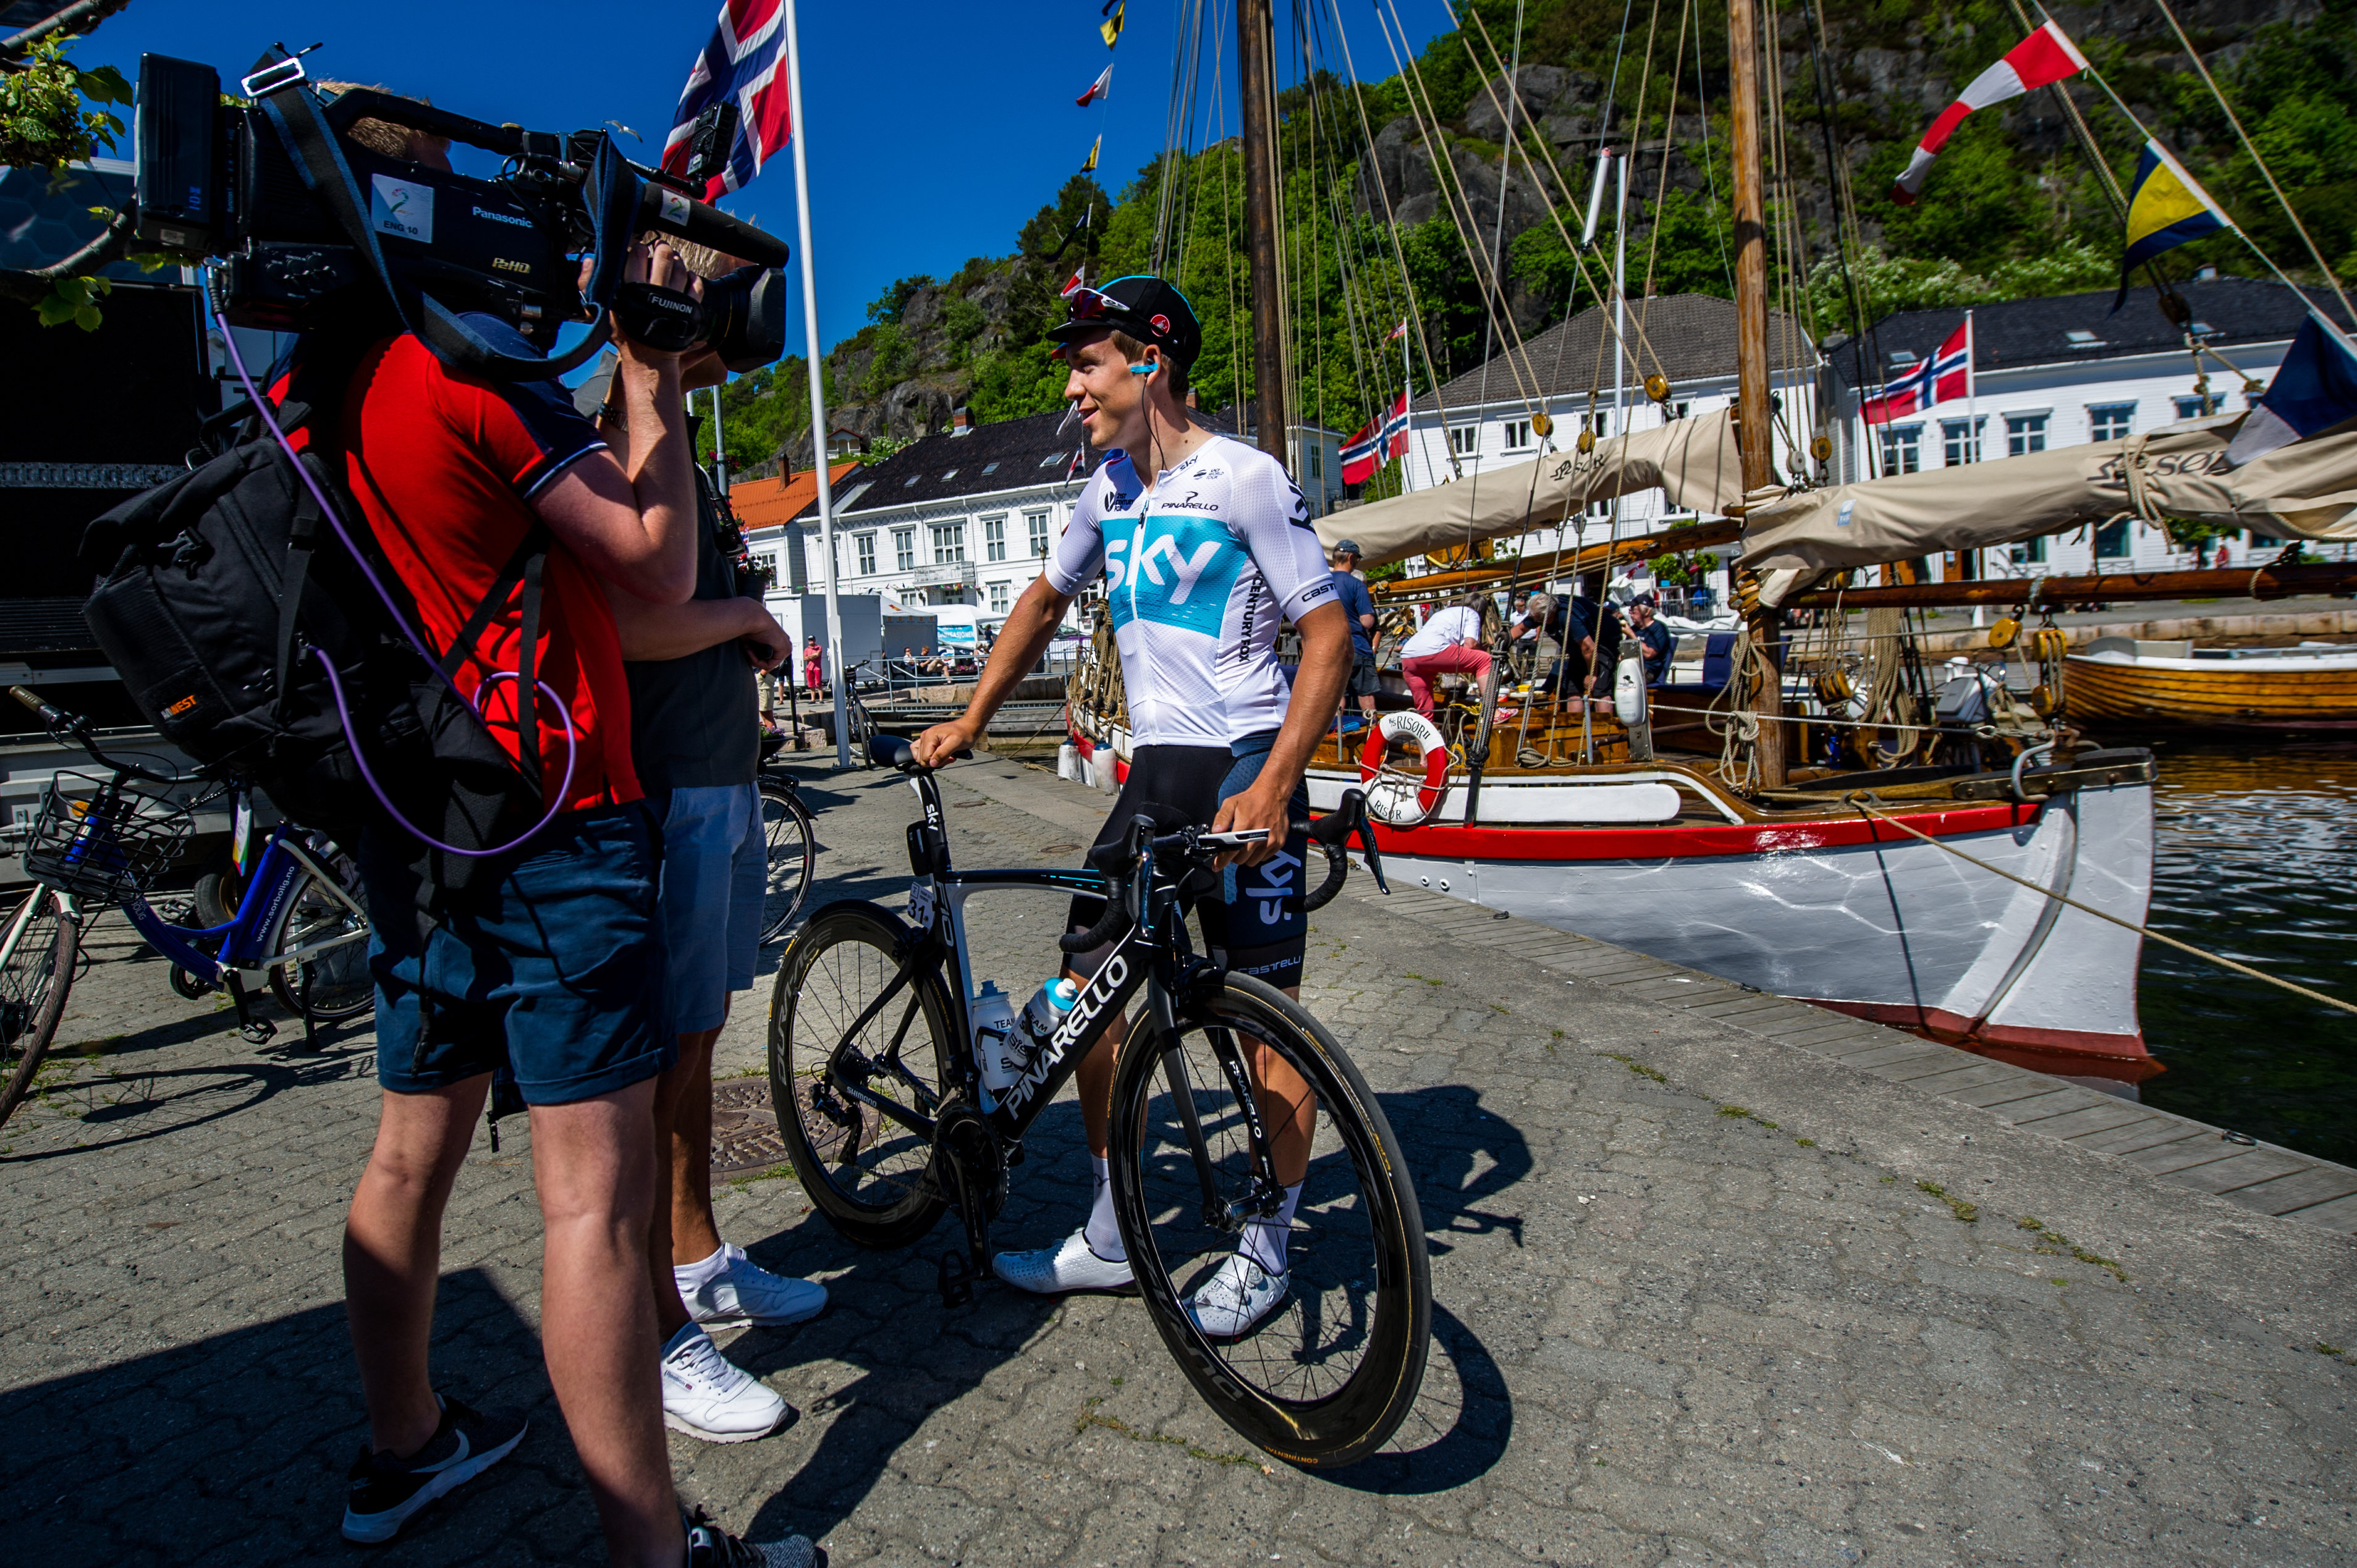 Tour of Norway to be broadcasted worldwide!